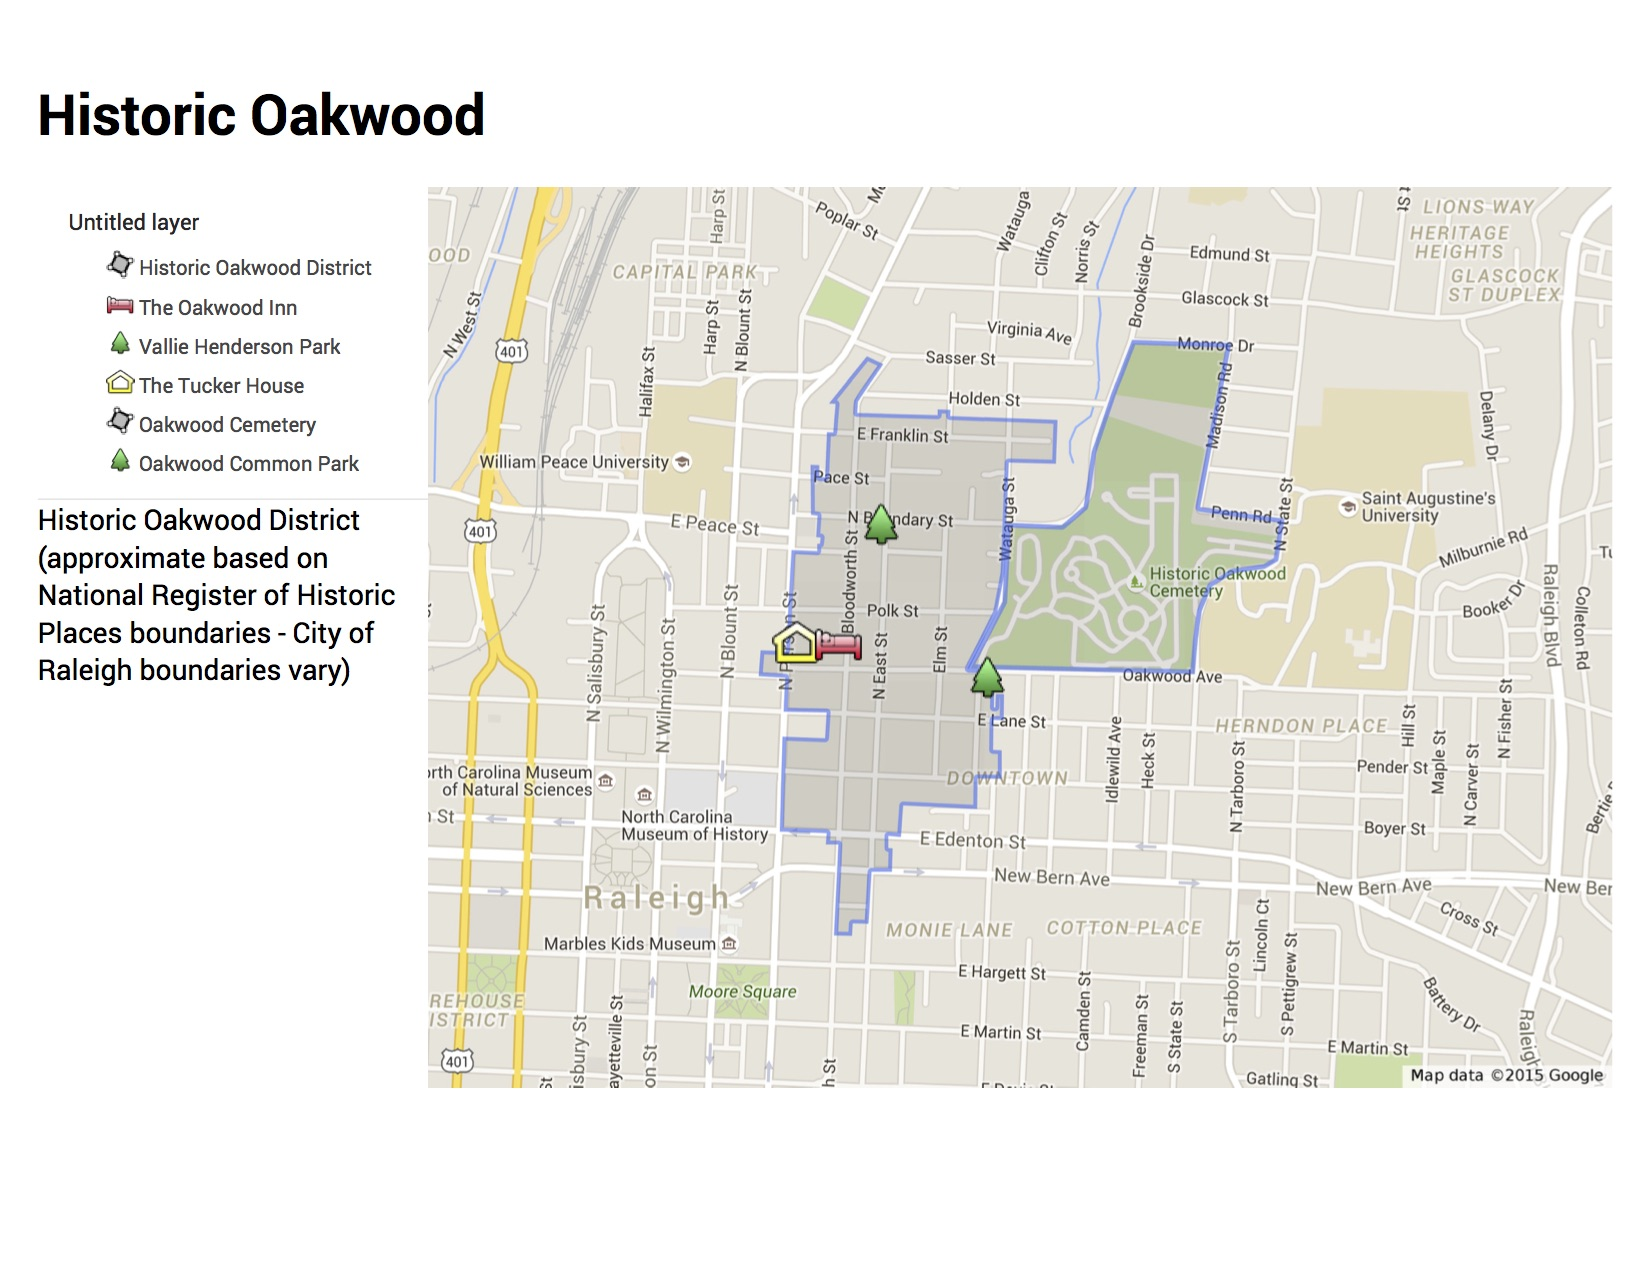 map of historic Oakwood